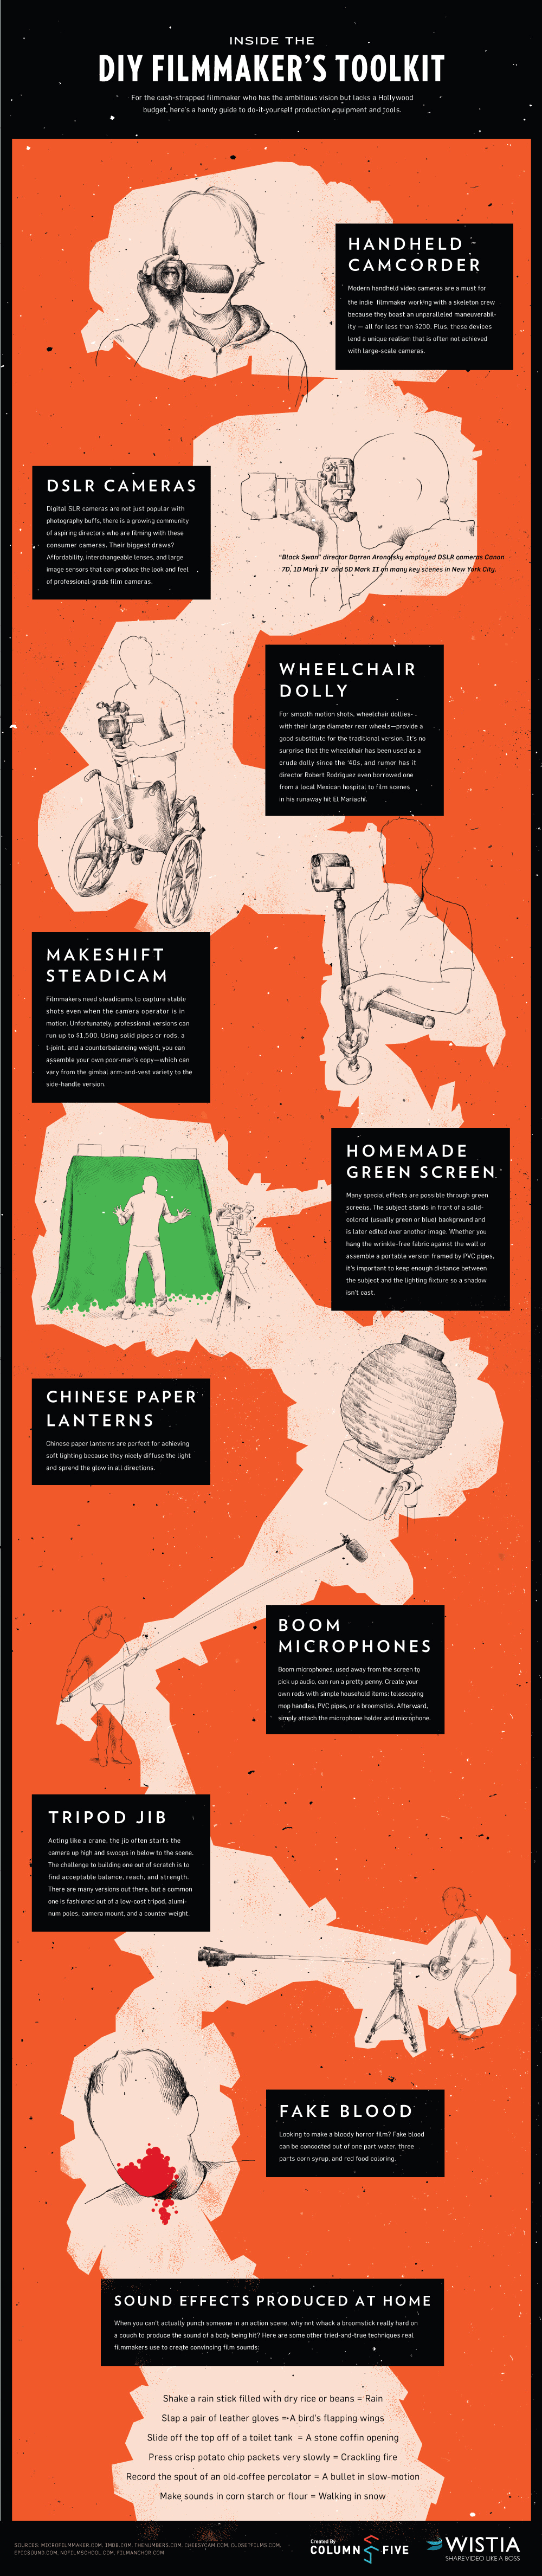 When One Learns To Create With Whatever Items May Be At Hand There Is An Elevated Level Of Acquired Creativity Ingenuity Th Filmmaking Infographic Greenscreen